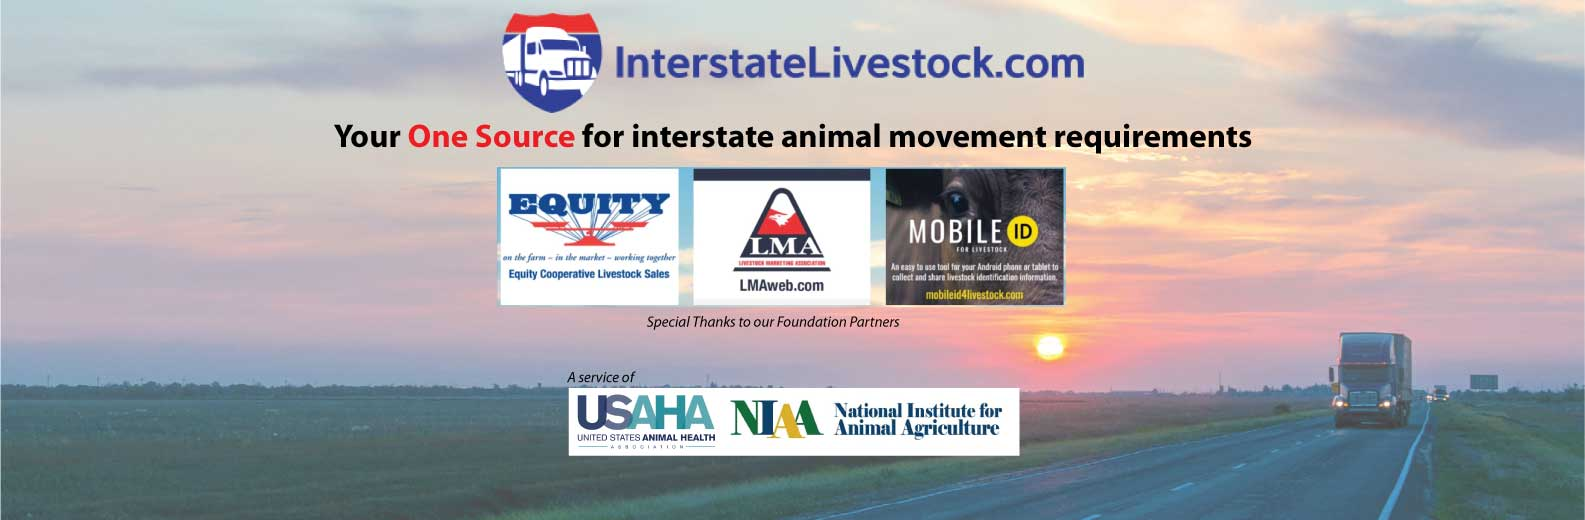 interstatelivestock.com